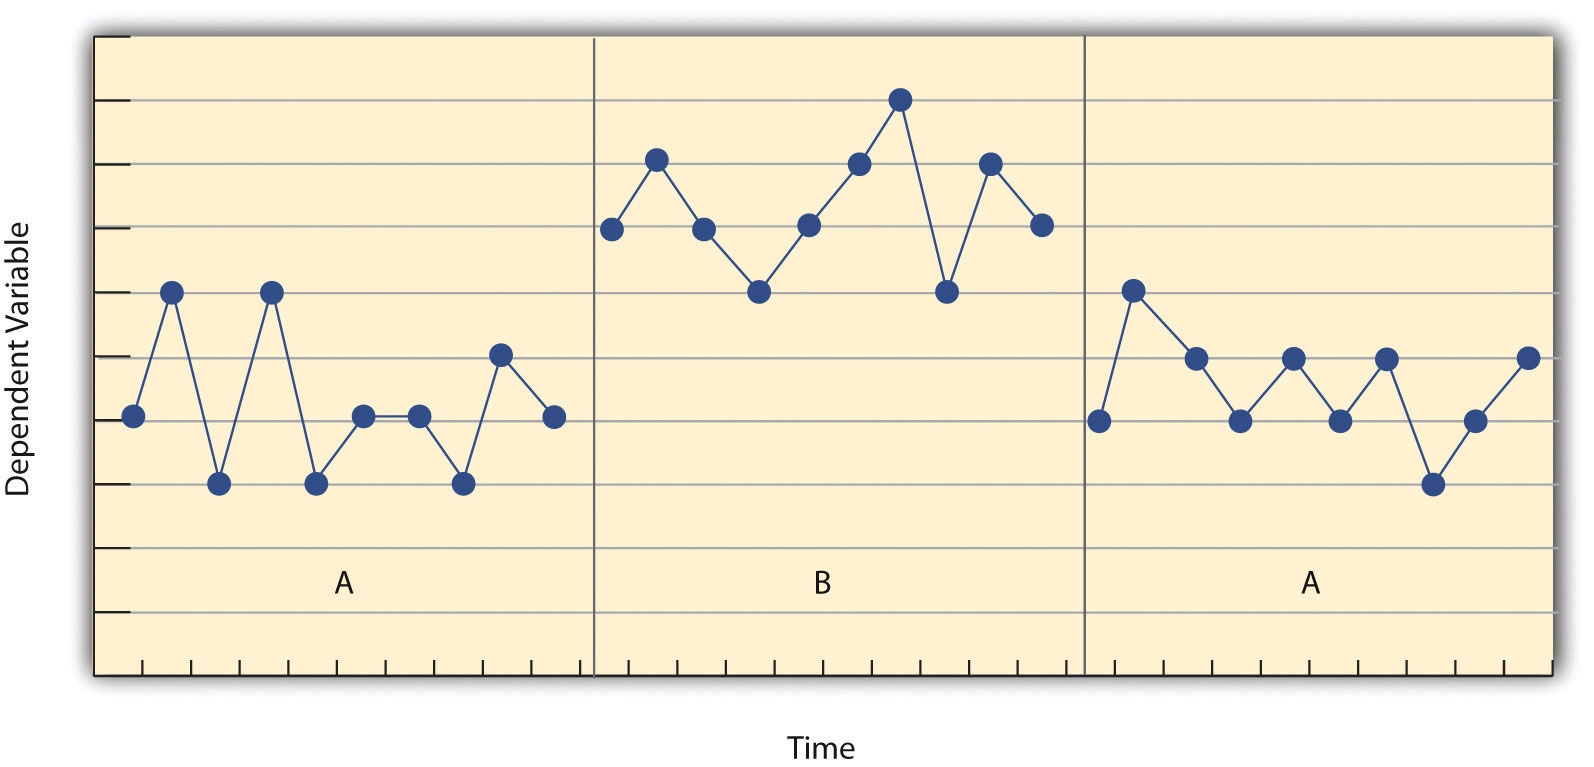 Results of a Generic Single-Subject Study Illustrating Several Principles of Single-Subject Research